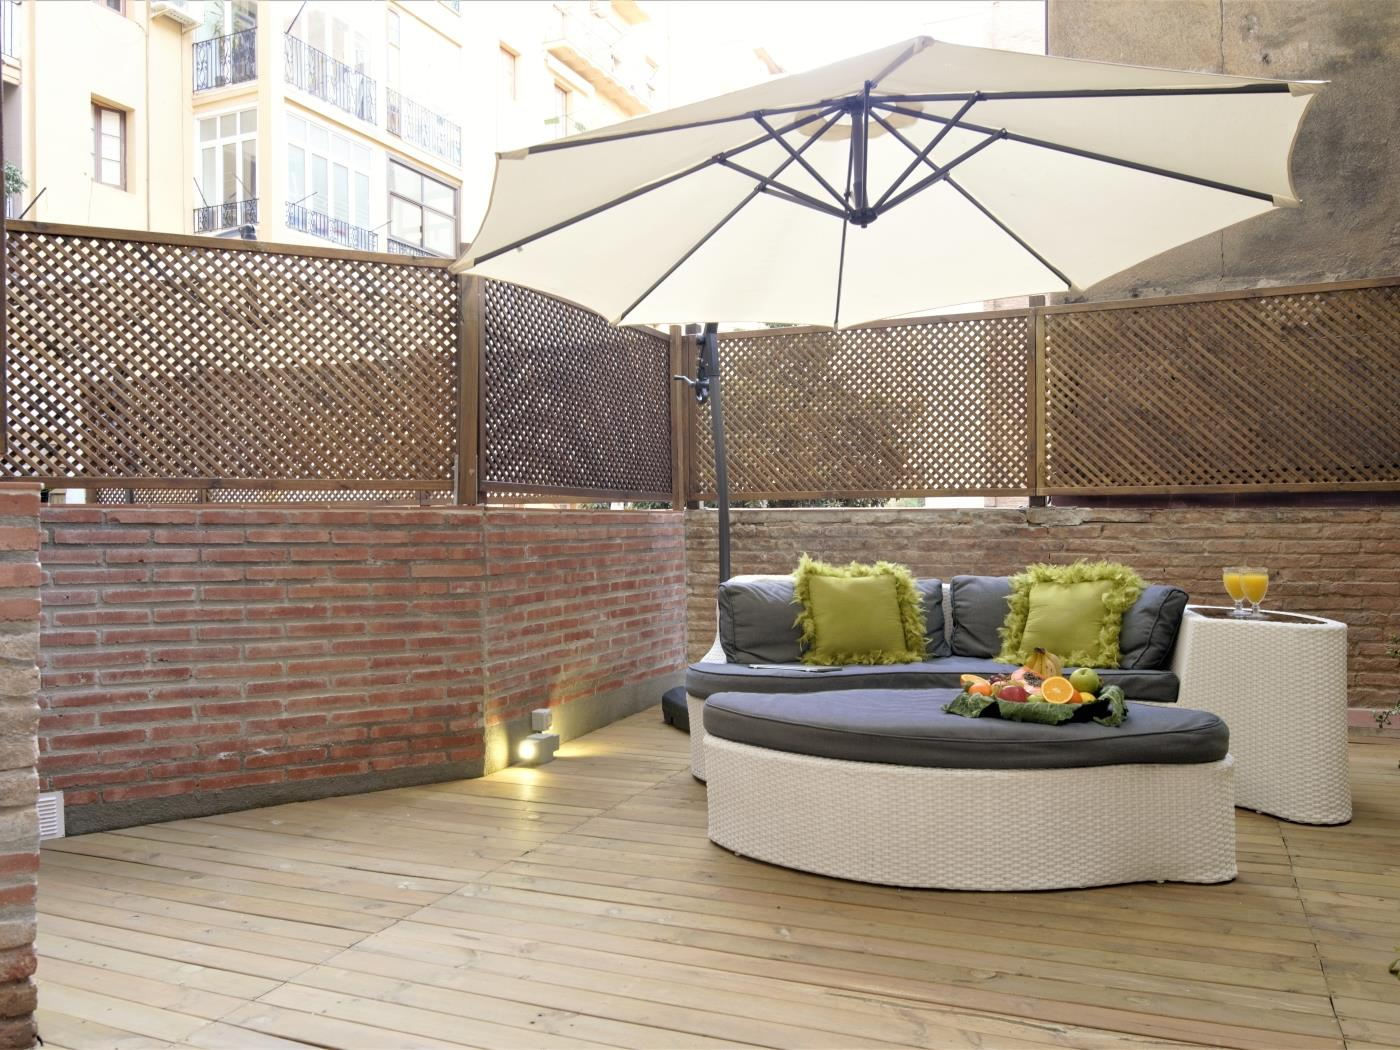 City Center Diagonal amazing apartment with private terrace for 4 - My Space Barcelona Appartementen